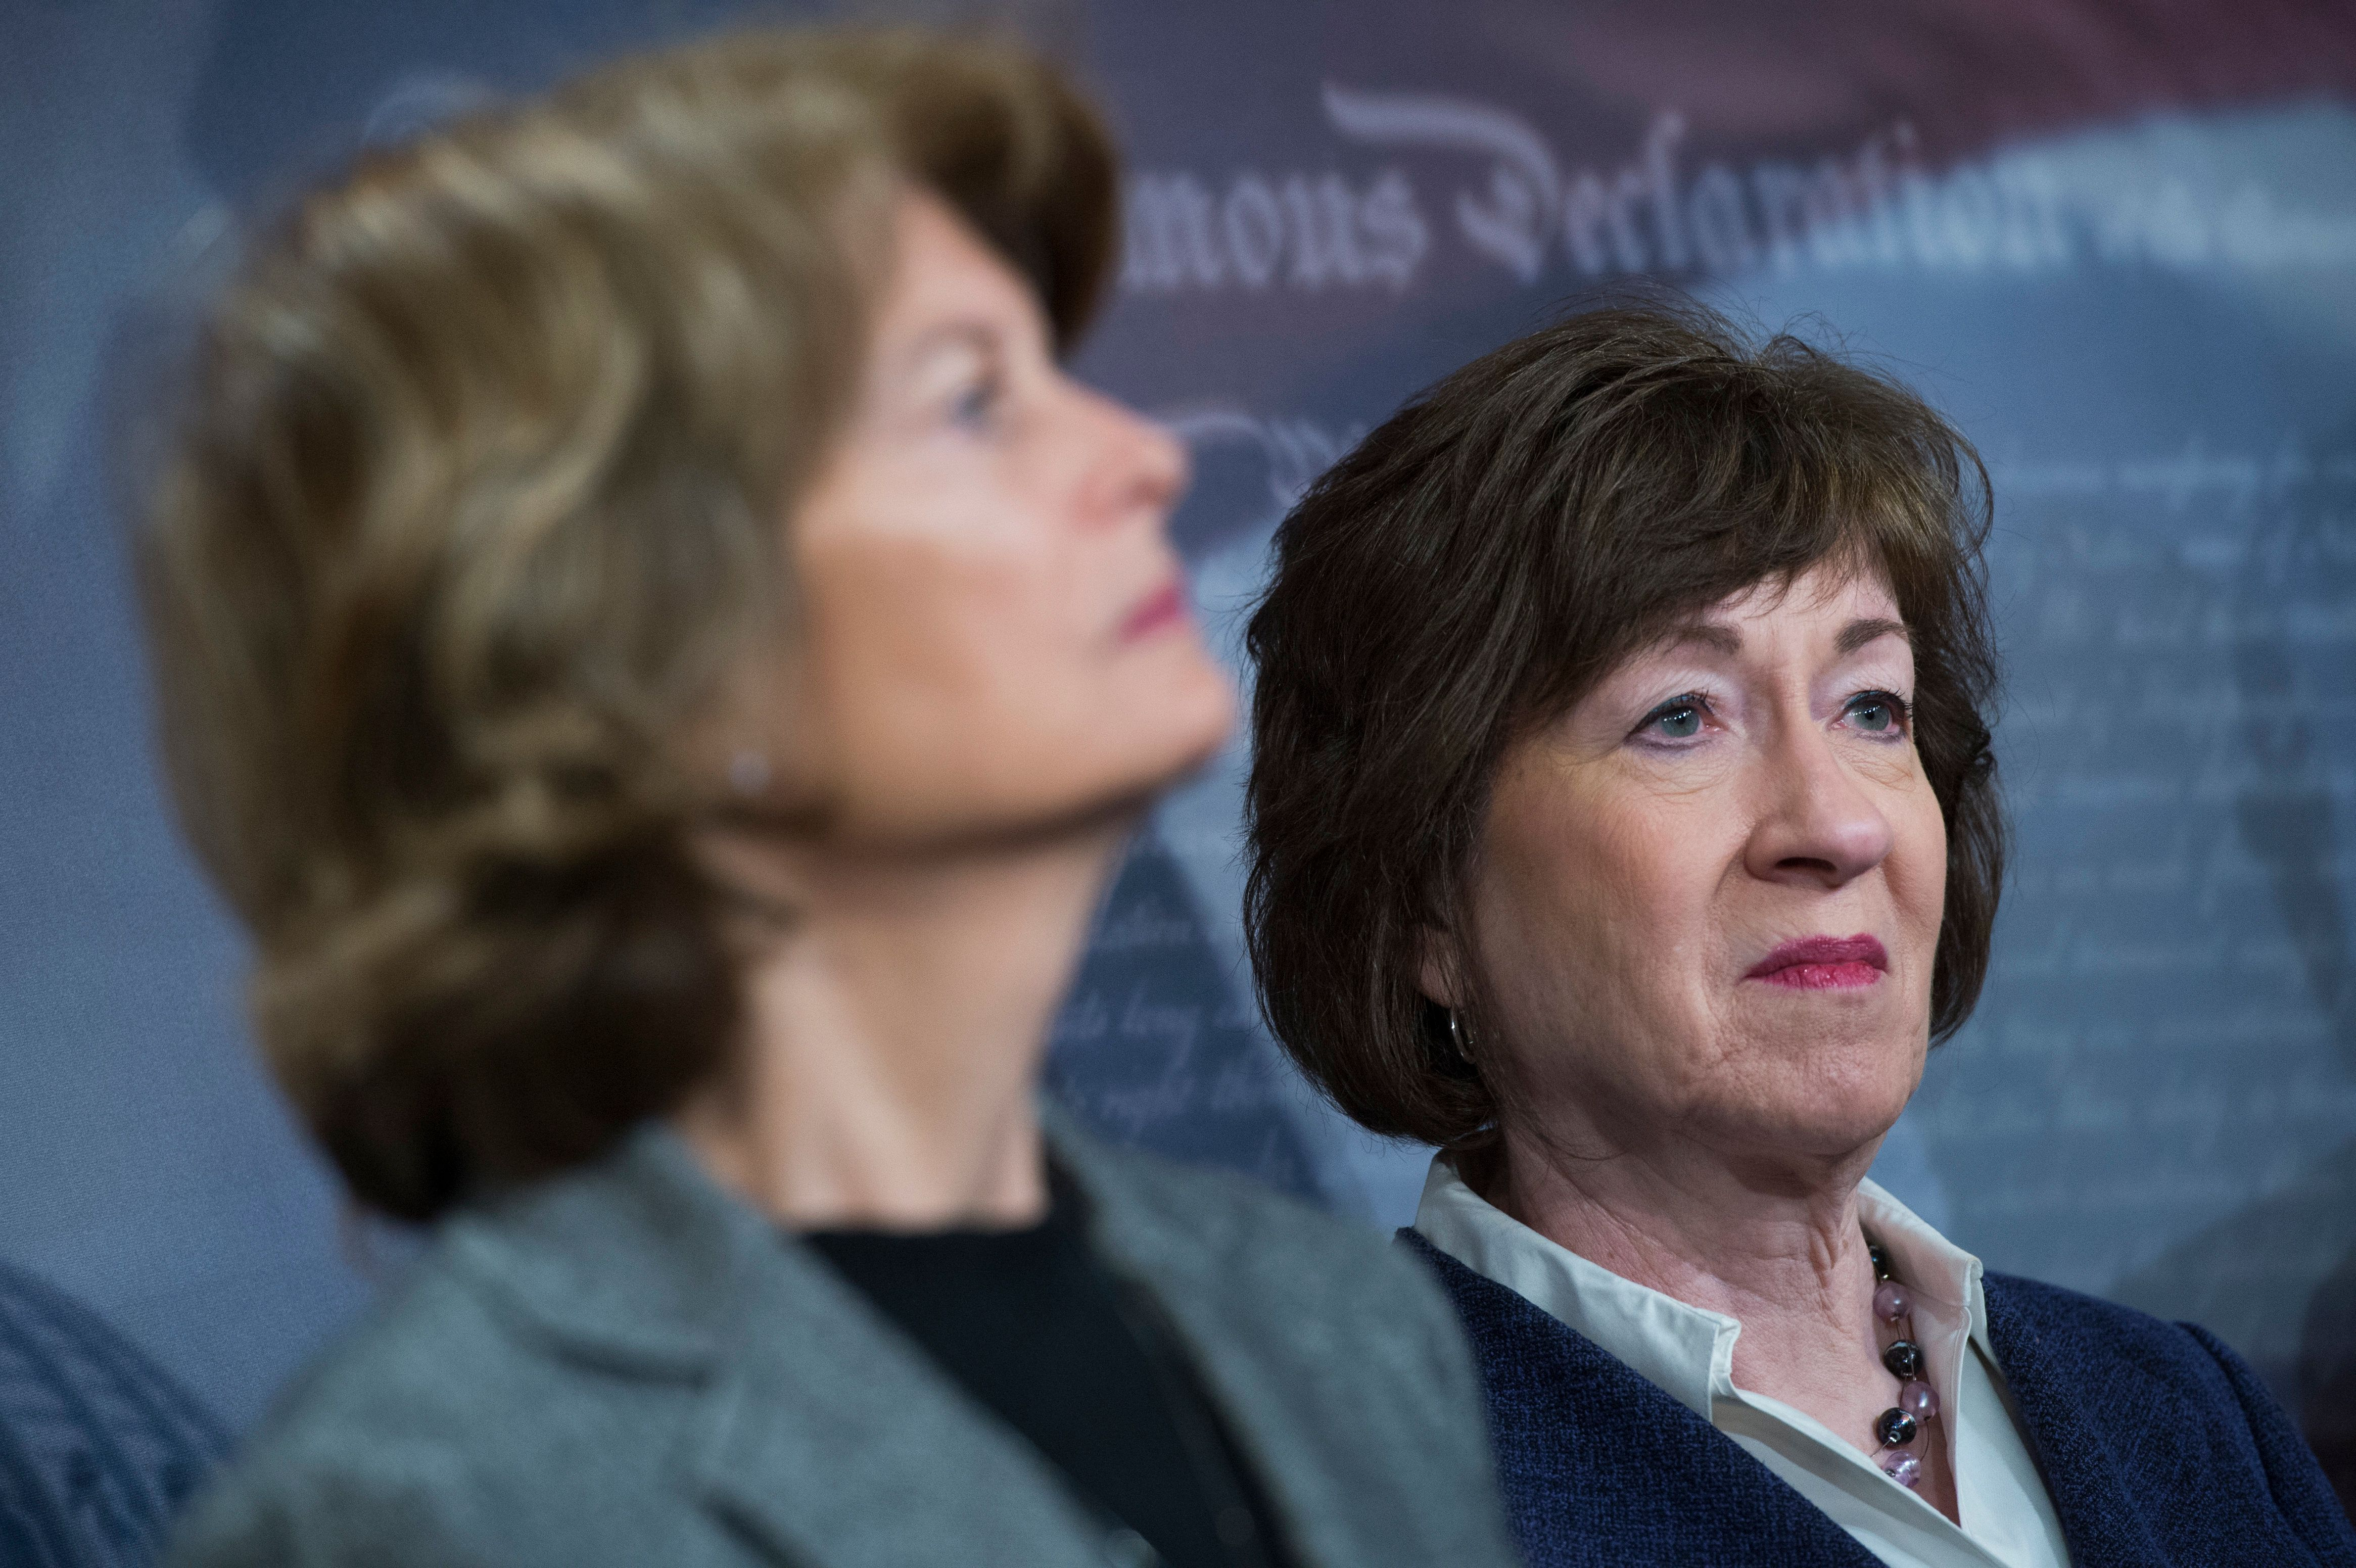 UNITED STATES - MARCH 21: Sens. Susan Collins, R-Maine, right, and Lisa Murkowski, R-Alaska, conduct a news conference in the Capitol on legislation to lower health insurance premiums for citizens who pay out of pocket on March 21, 2018. (Photo By Tom Williams/CQ Roll Call)